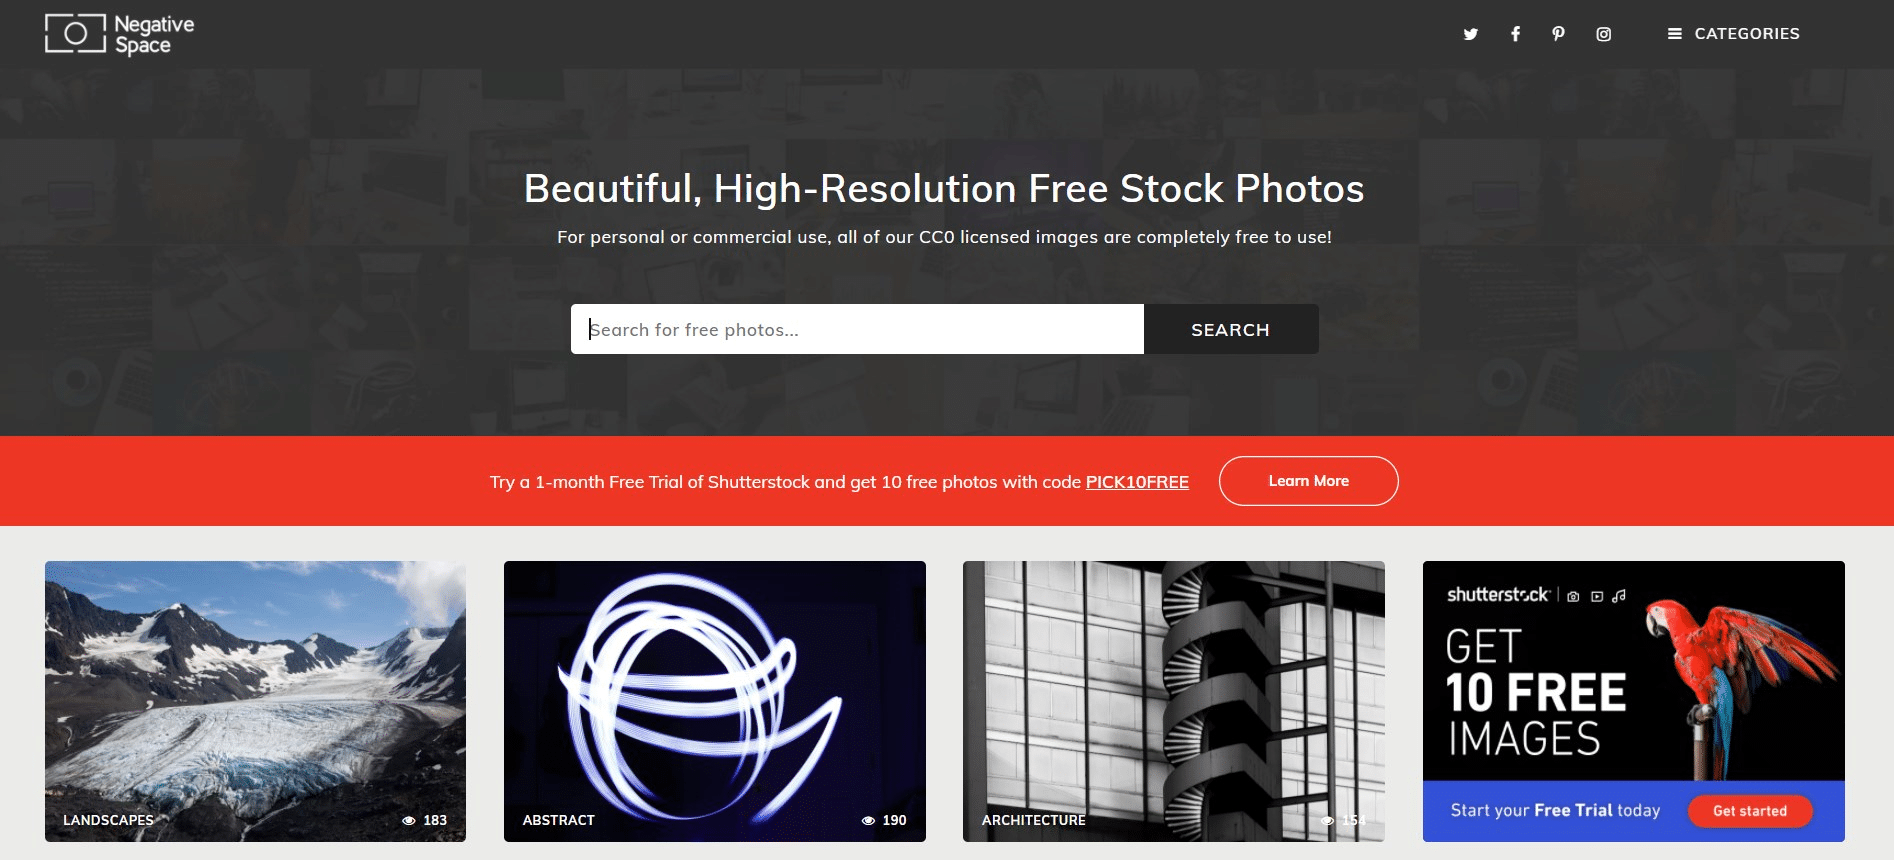 Negative Space - Stock free image website